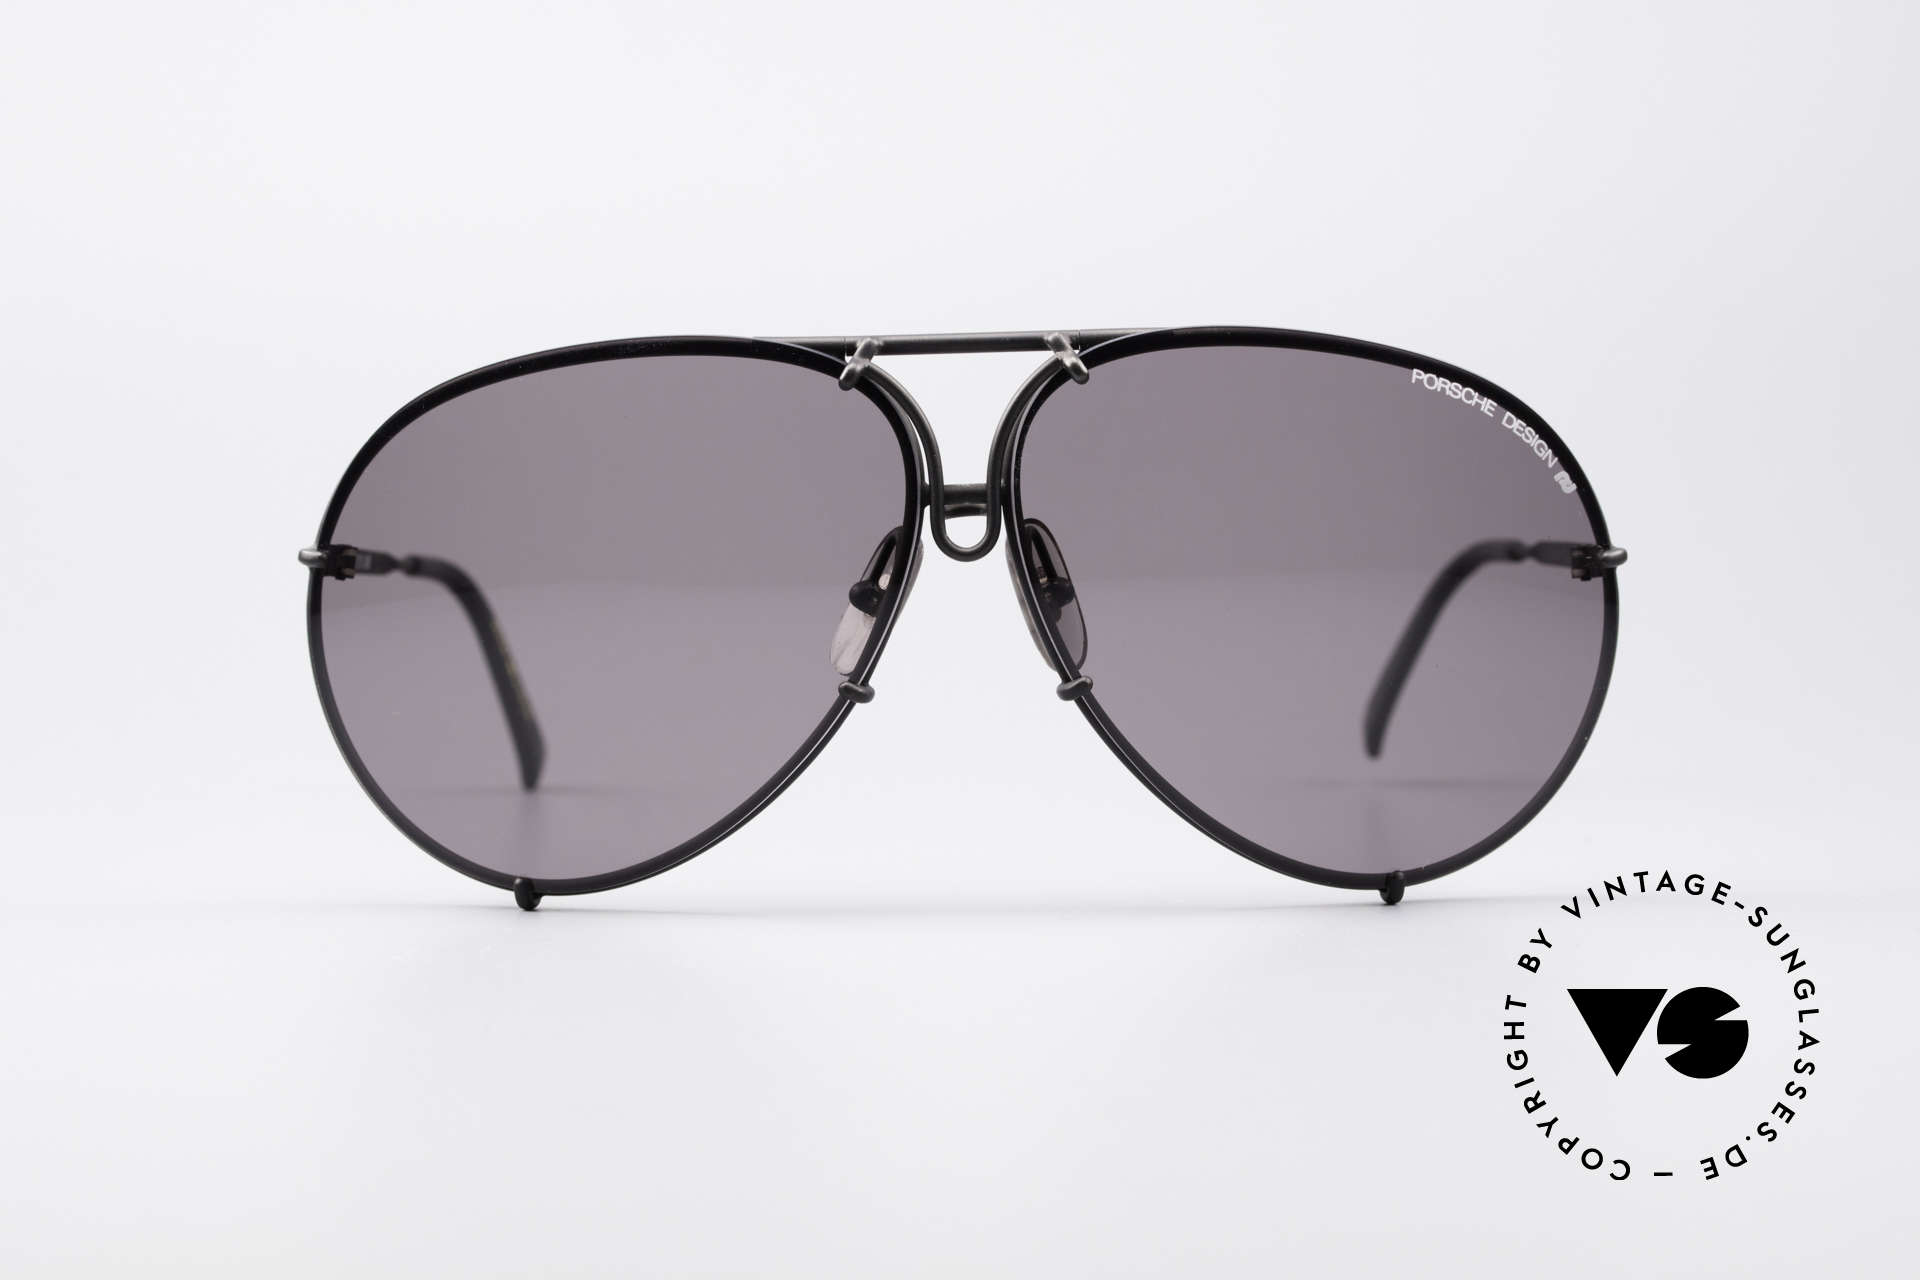 Porsche 5621 Large 80's Aviator Shades, NO RETRO SUNGLASSES, but a 30 years old original, Made for Men